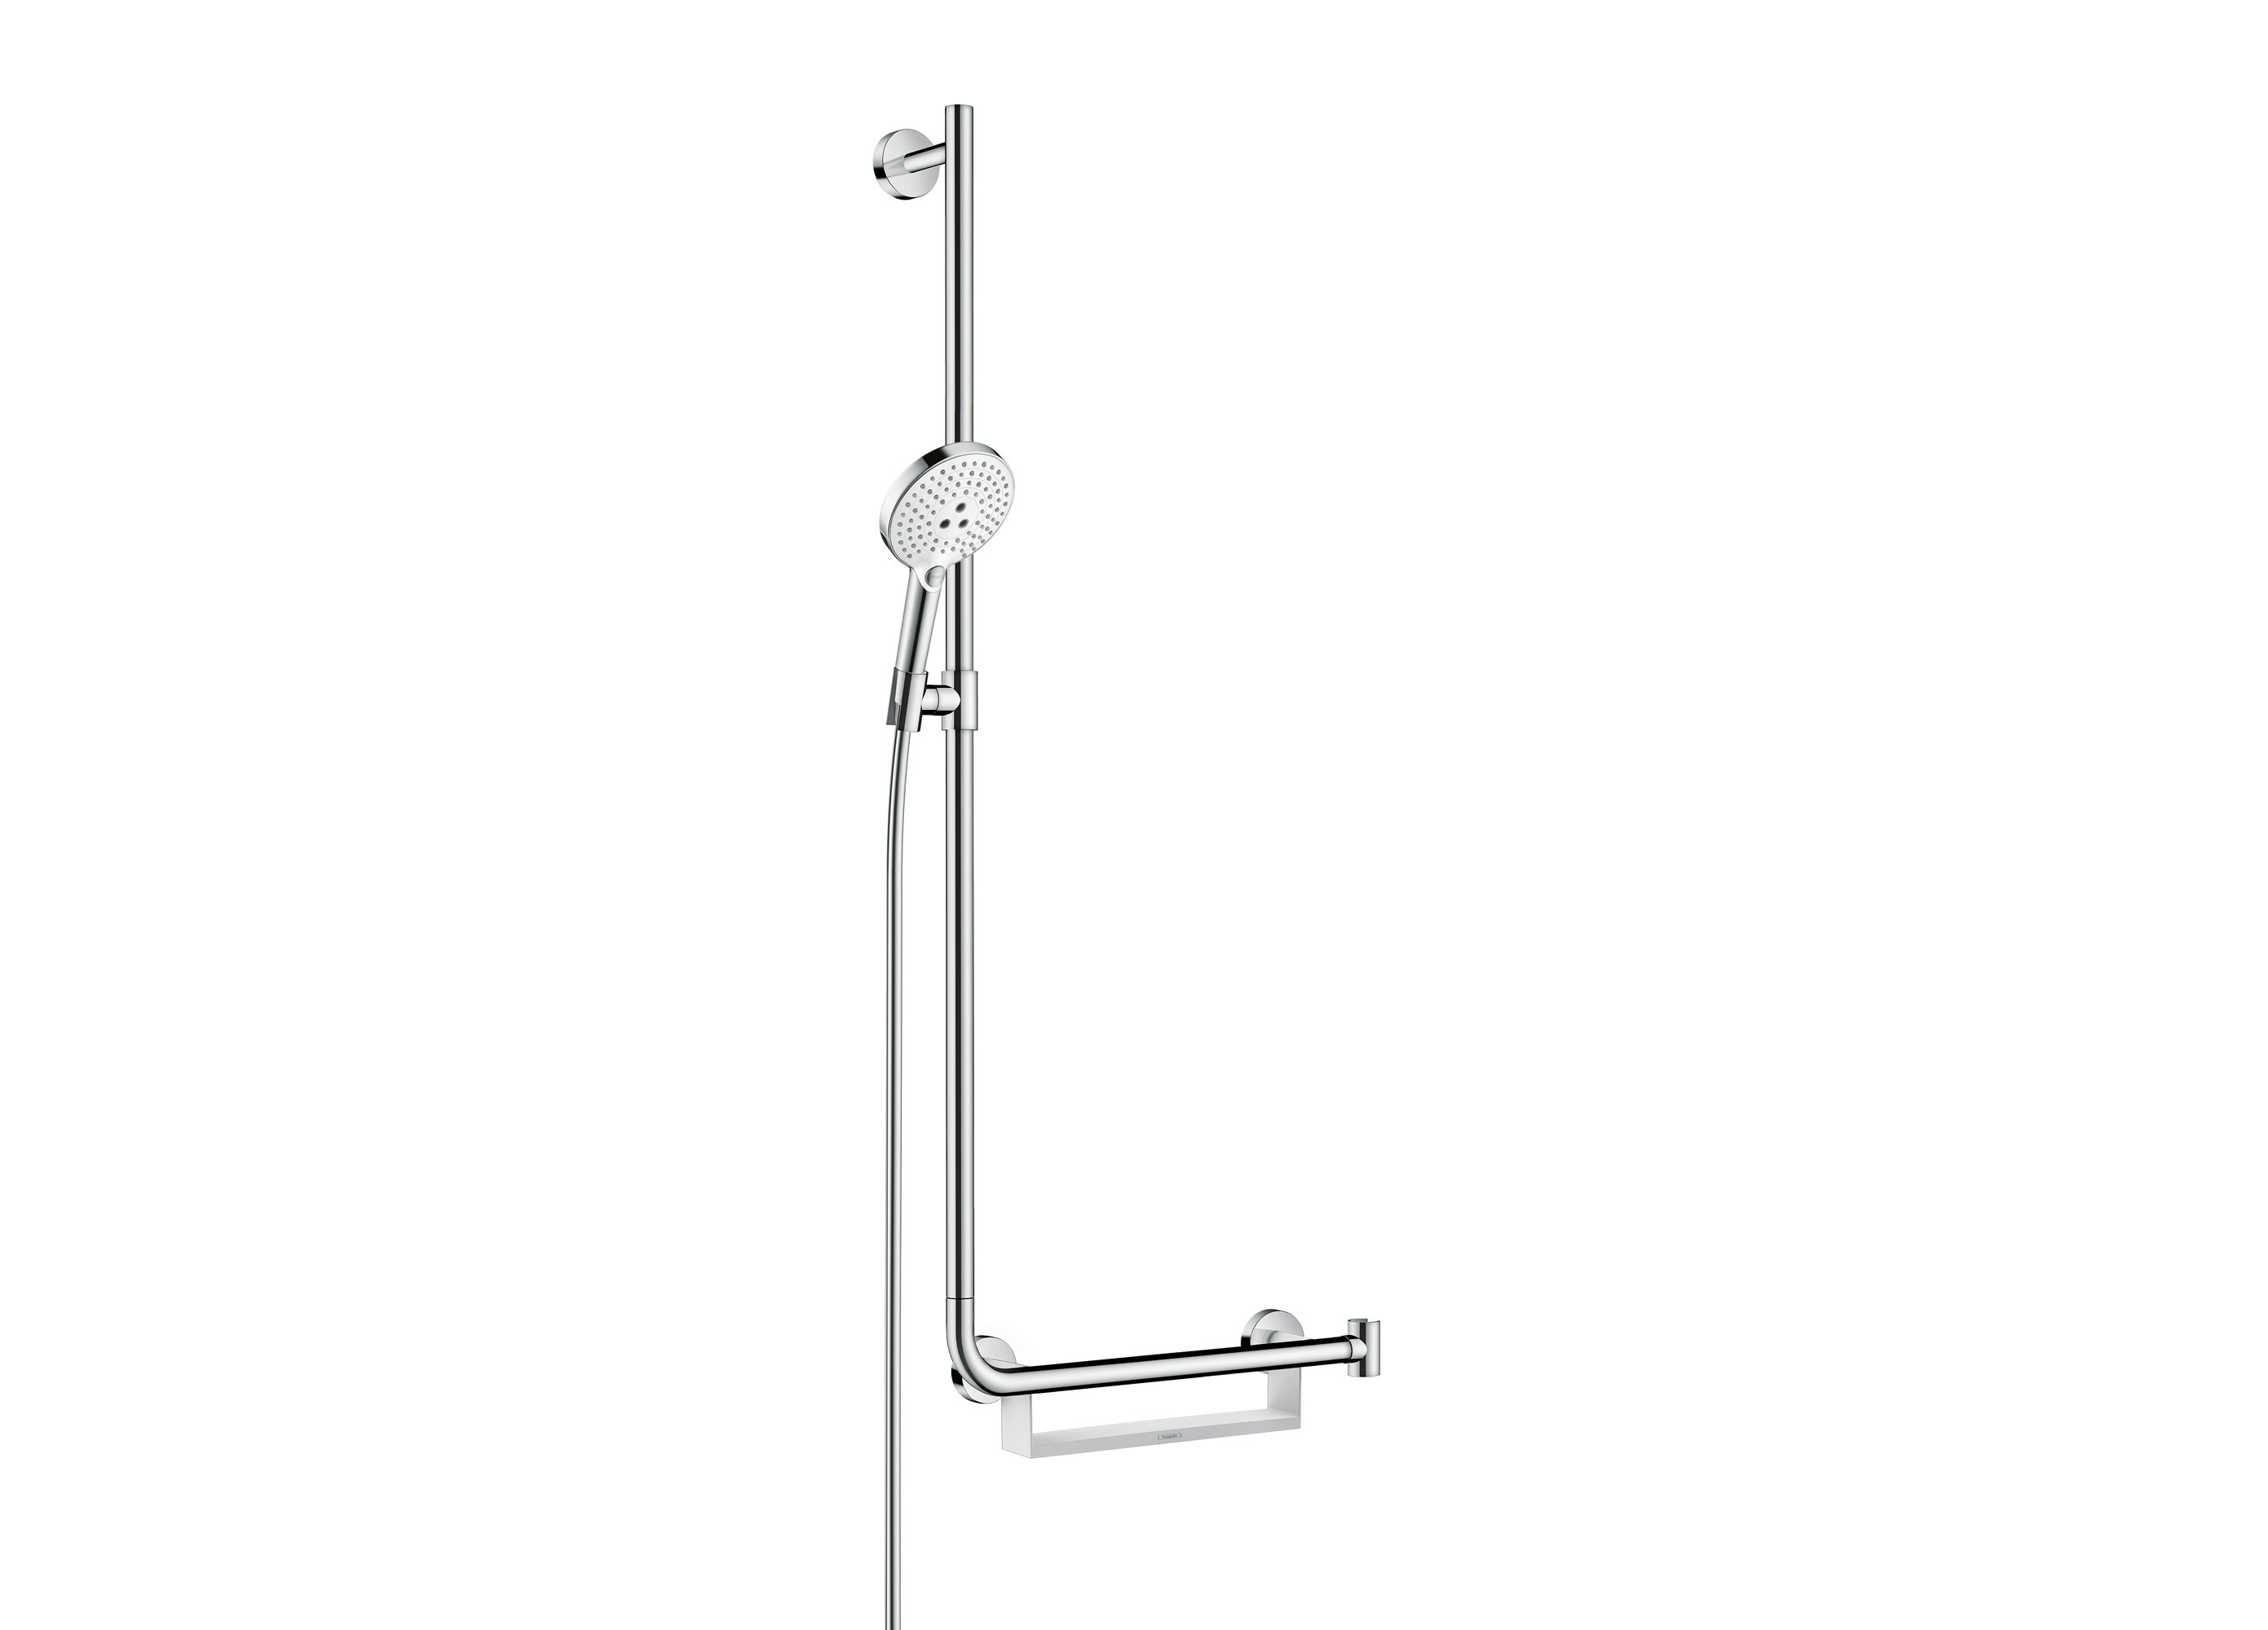 Unica Comfort shower bar left by Hansgrohe | STYLEPARK